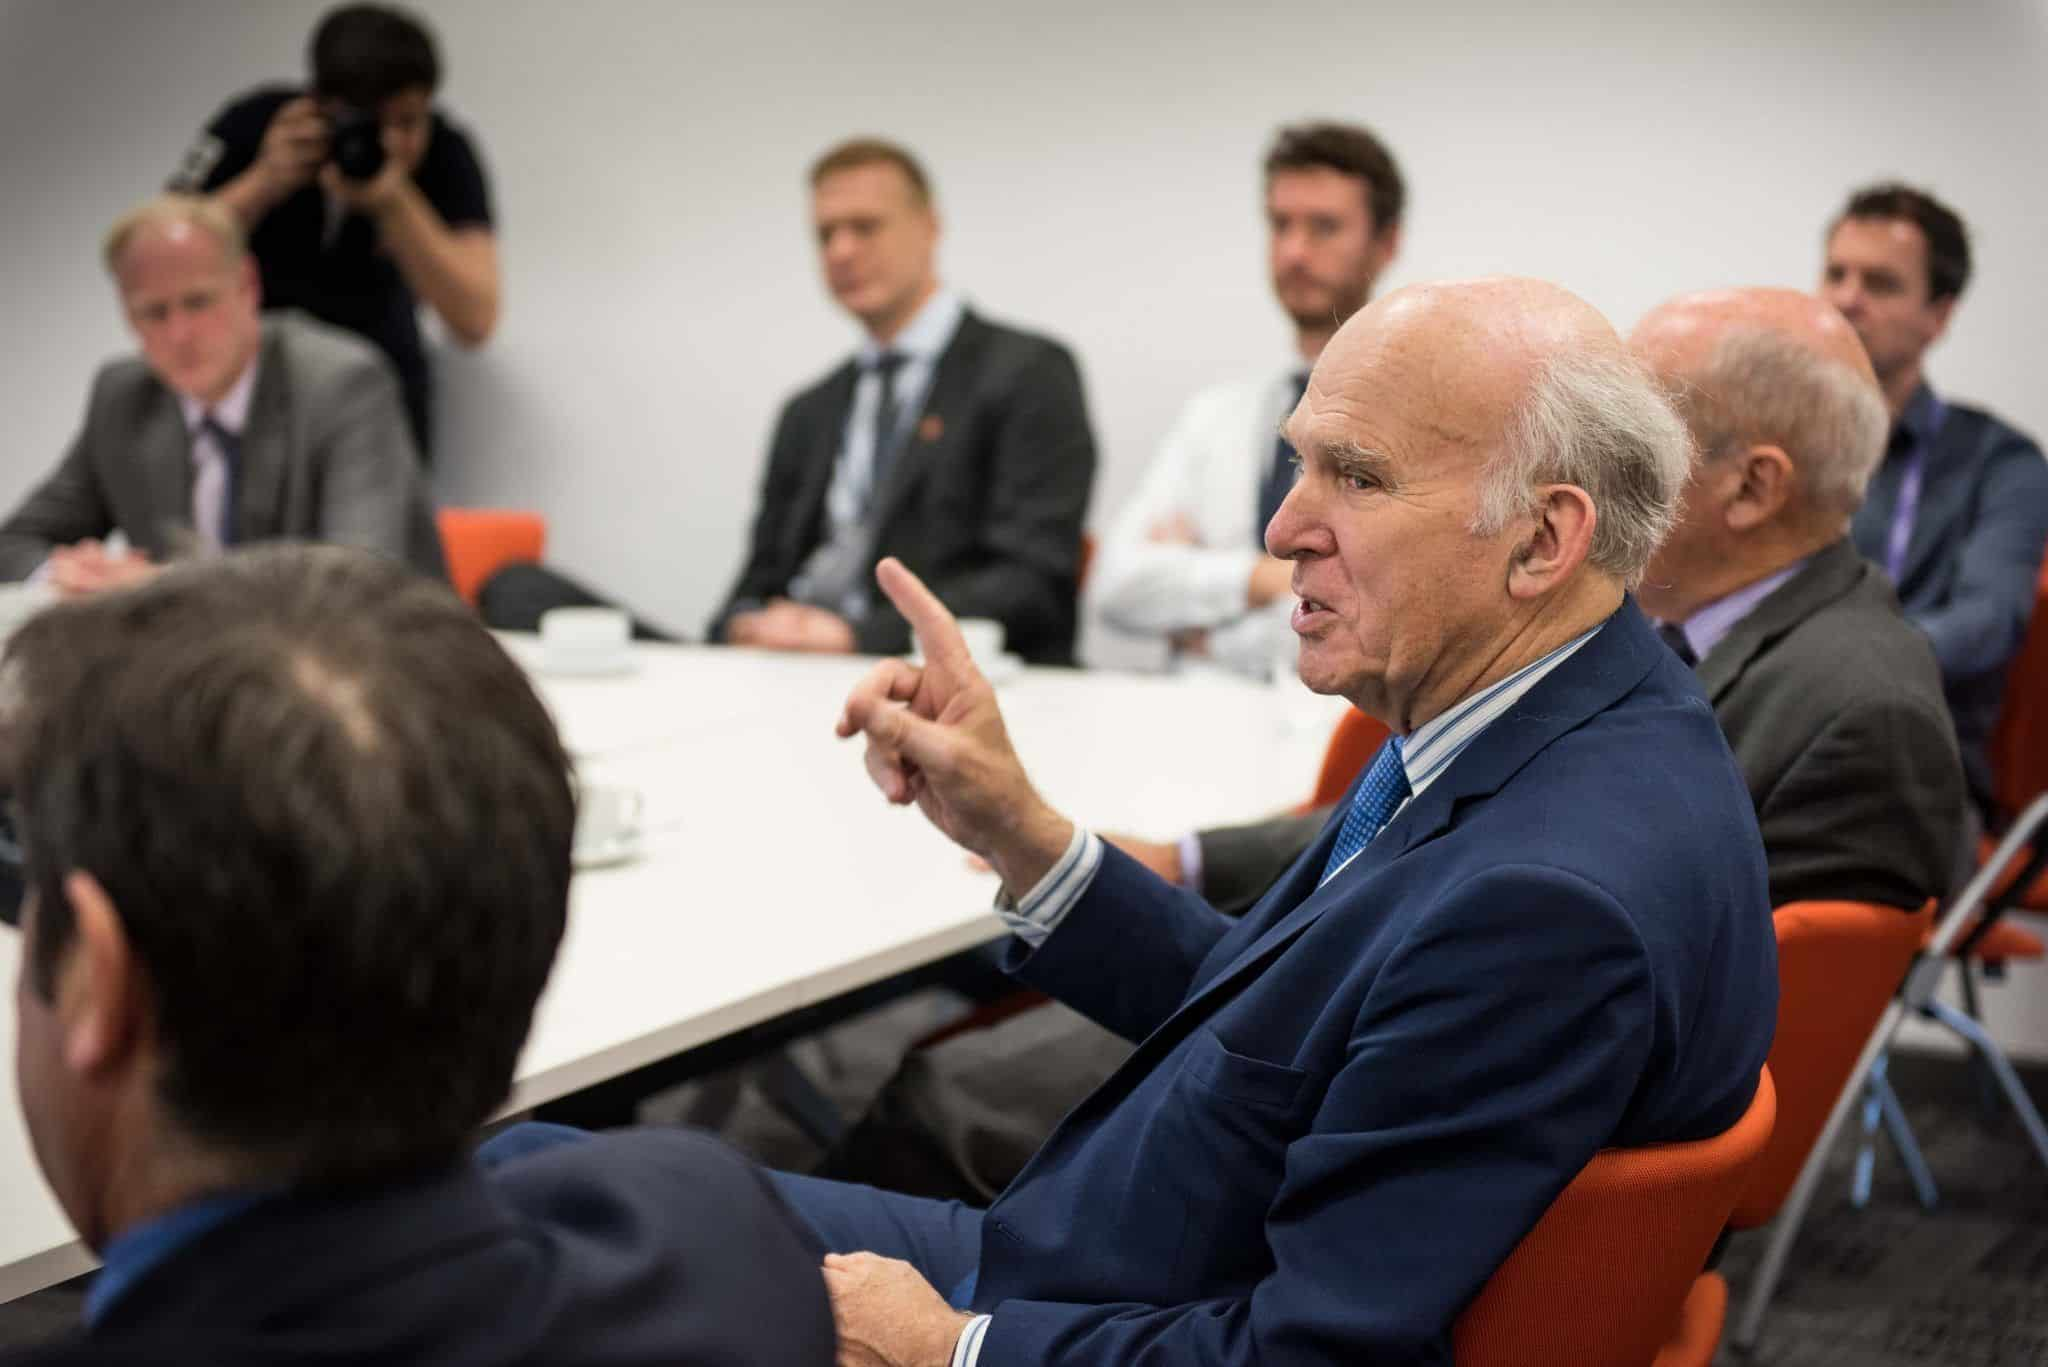 Exeter Science Park Discusses Future of the South West with Sir Vince Cable